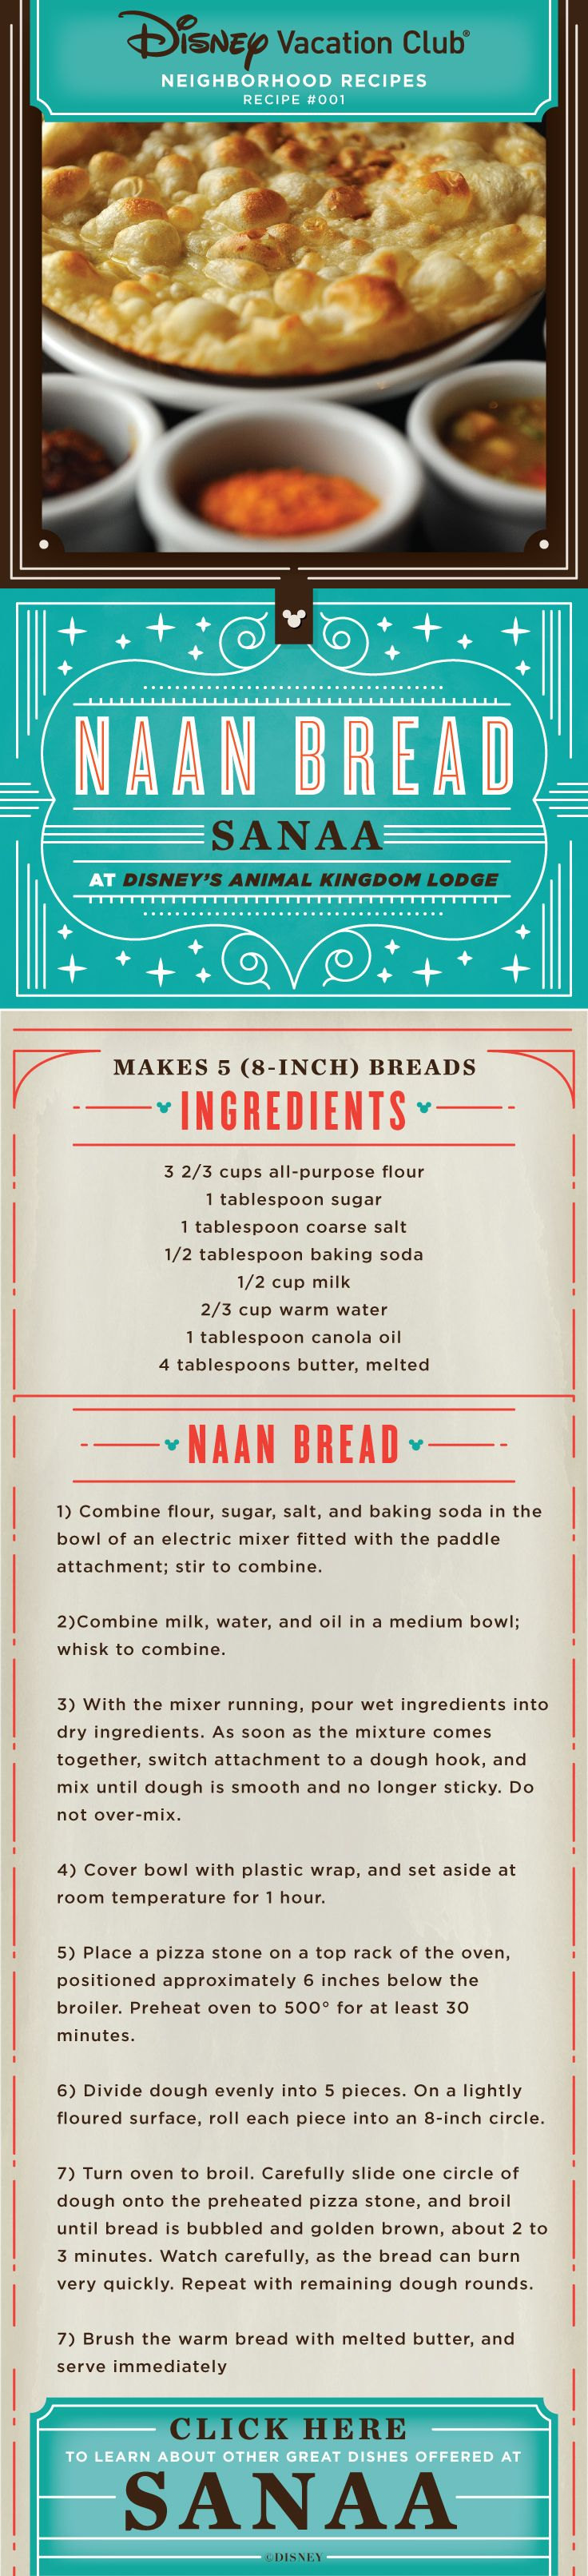 Naan Bread recipe from Sanaa at Disney's Animal Kingdom Lodge at Walt Disney World Resort.